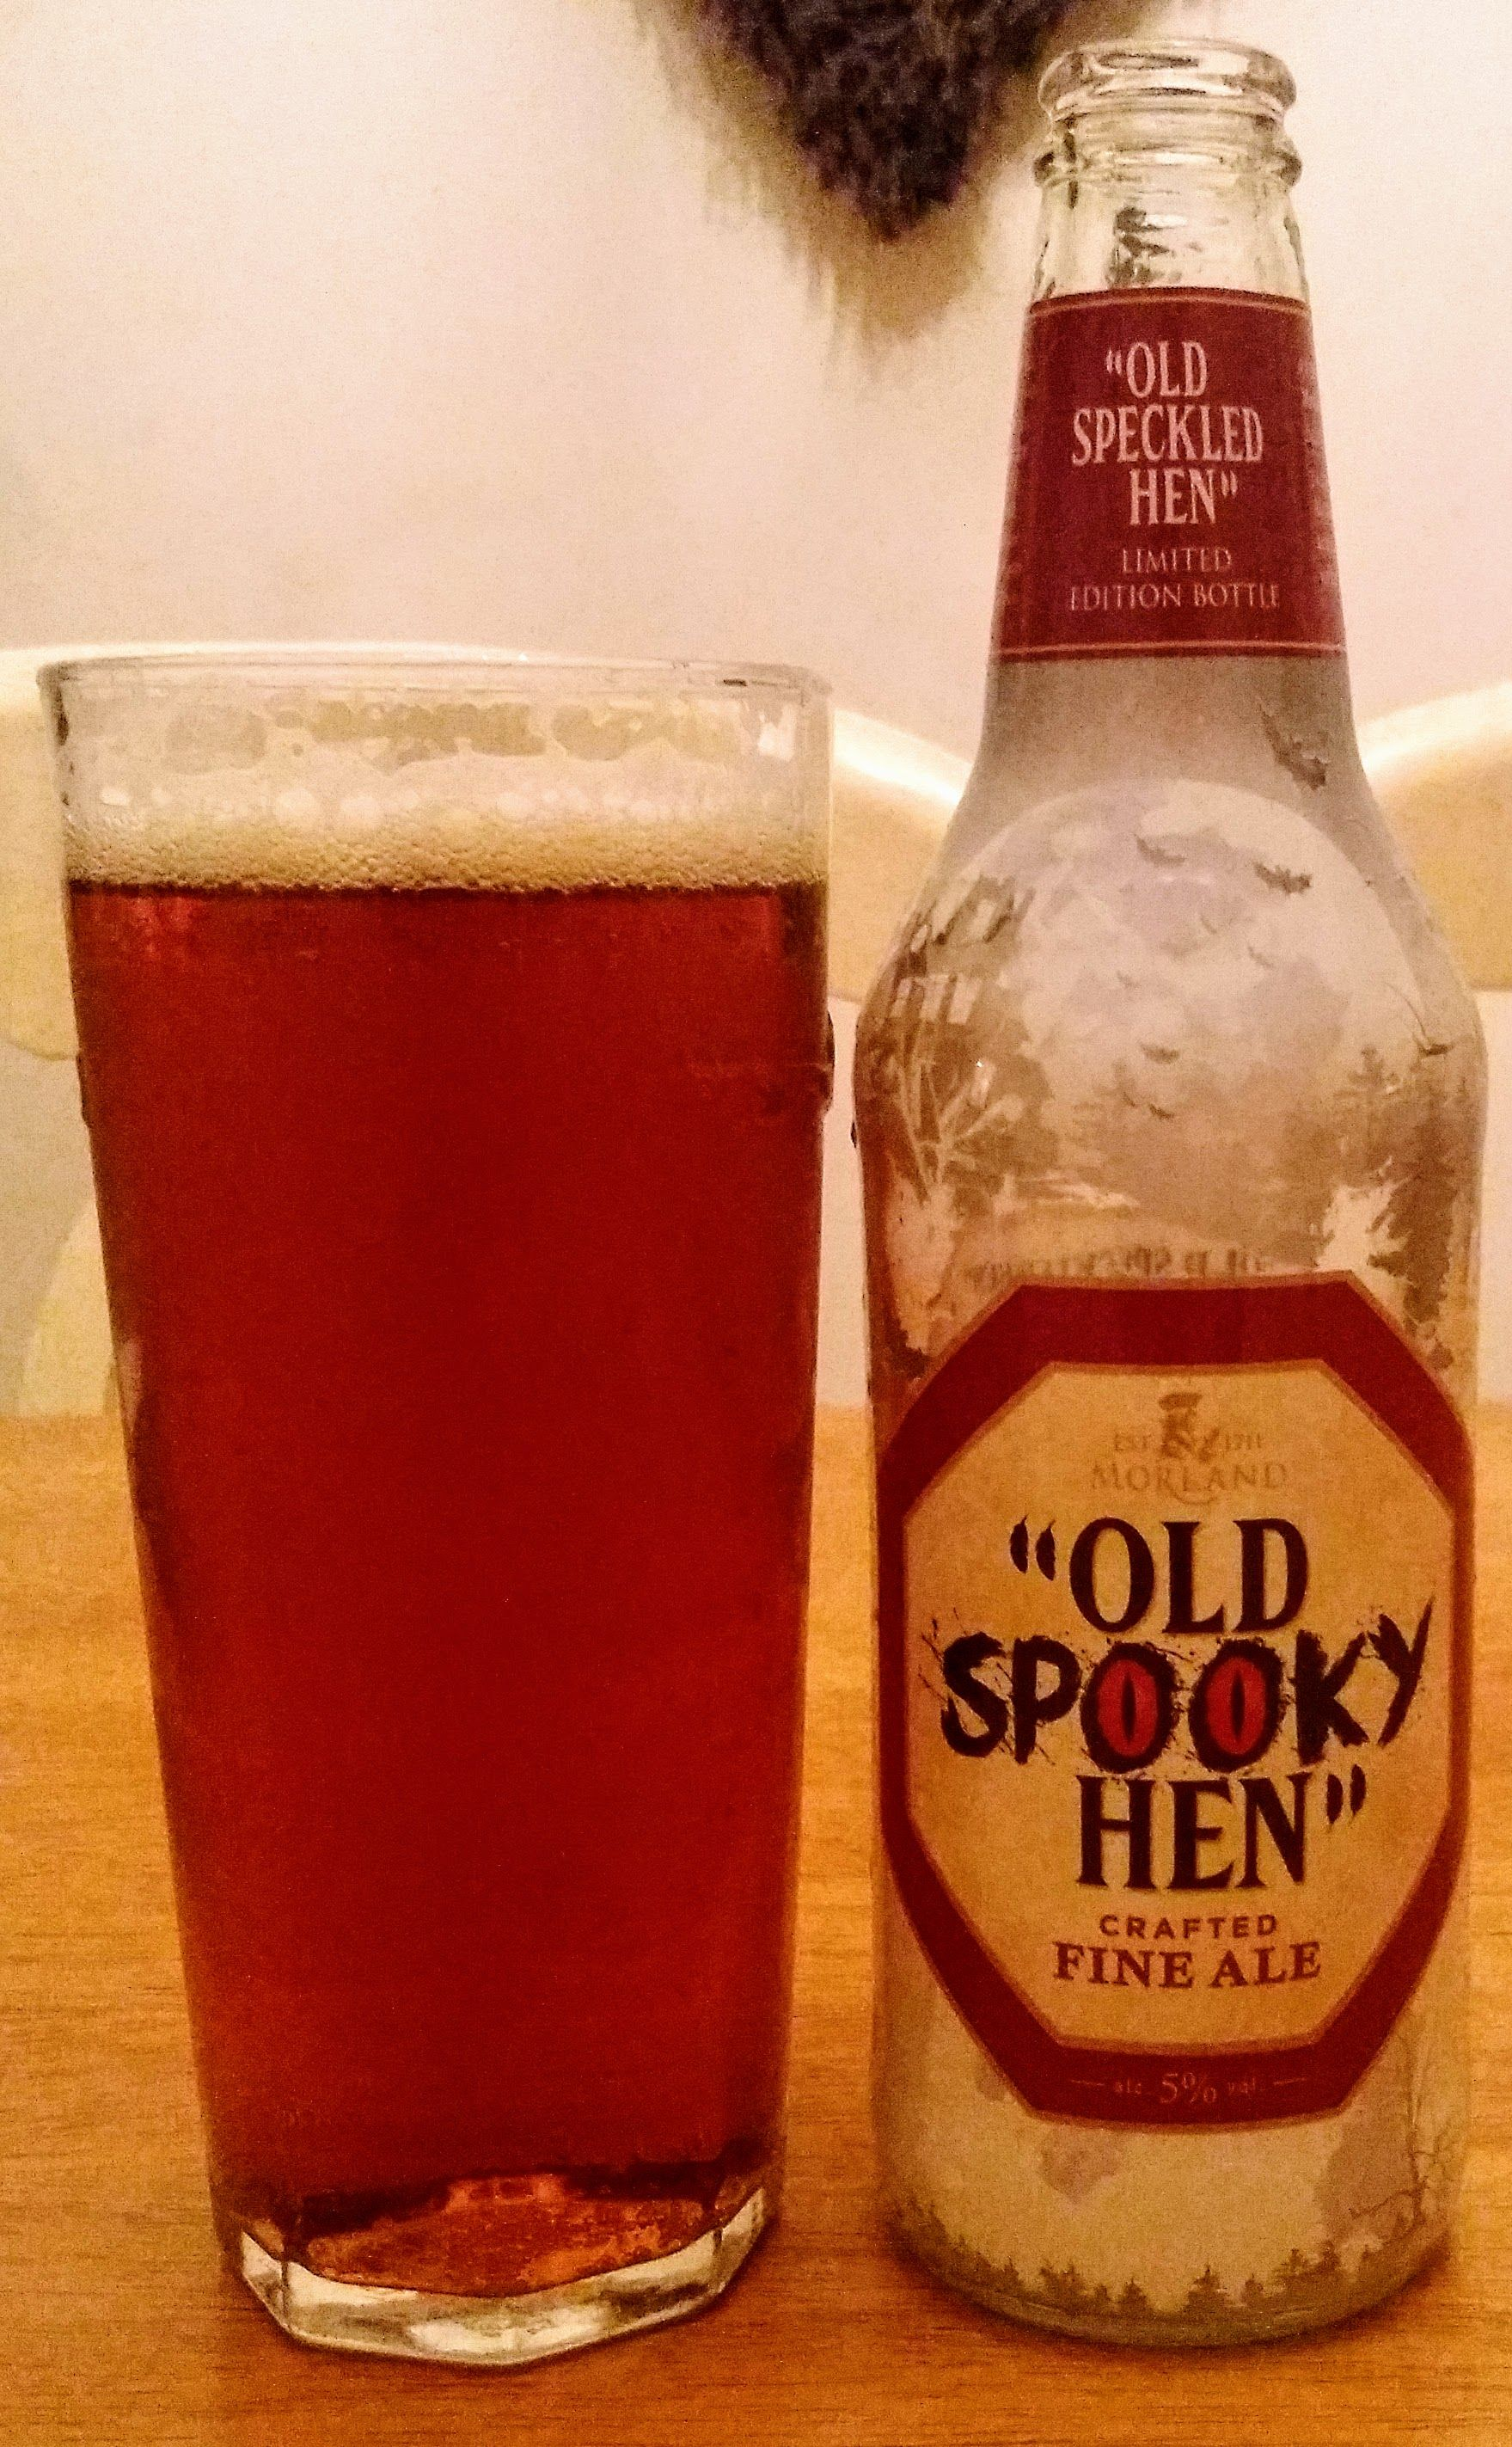 Old Speckled Hen From Morland Brewing In Halloween Labeling Drinkable But Unremarkable Amber Ale 7 10 British Beer Ale Beer